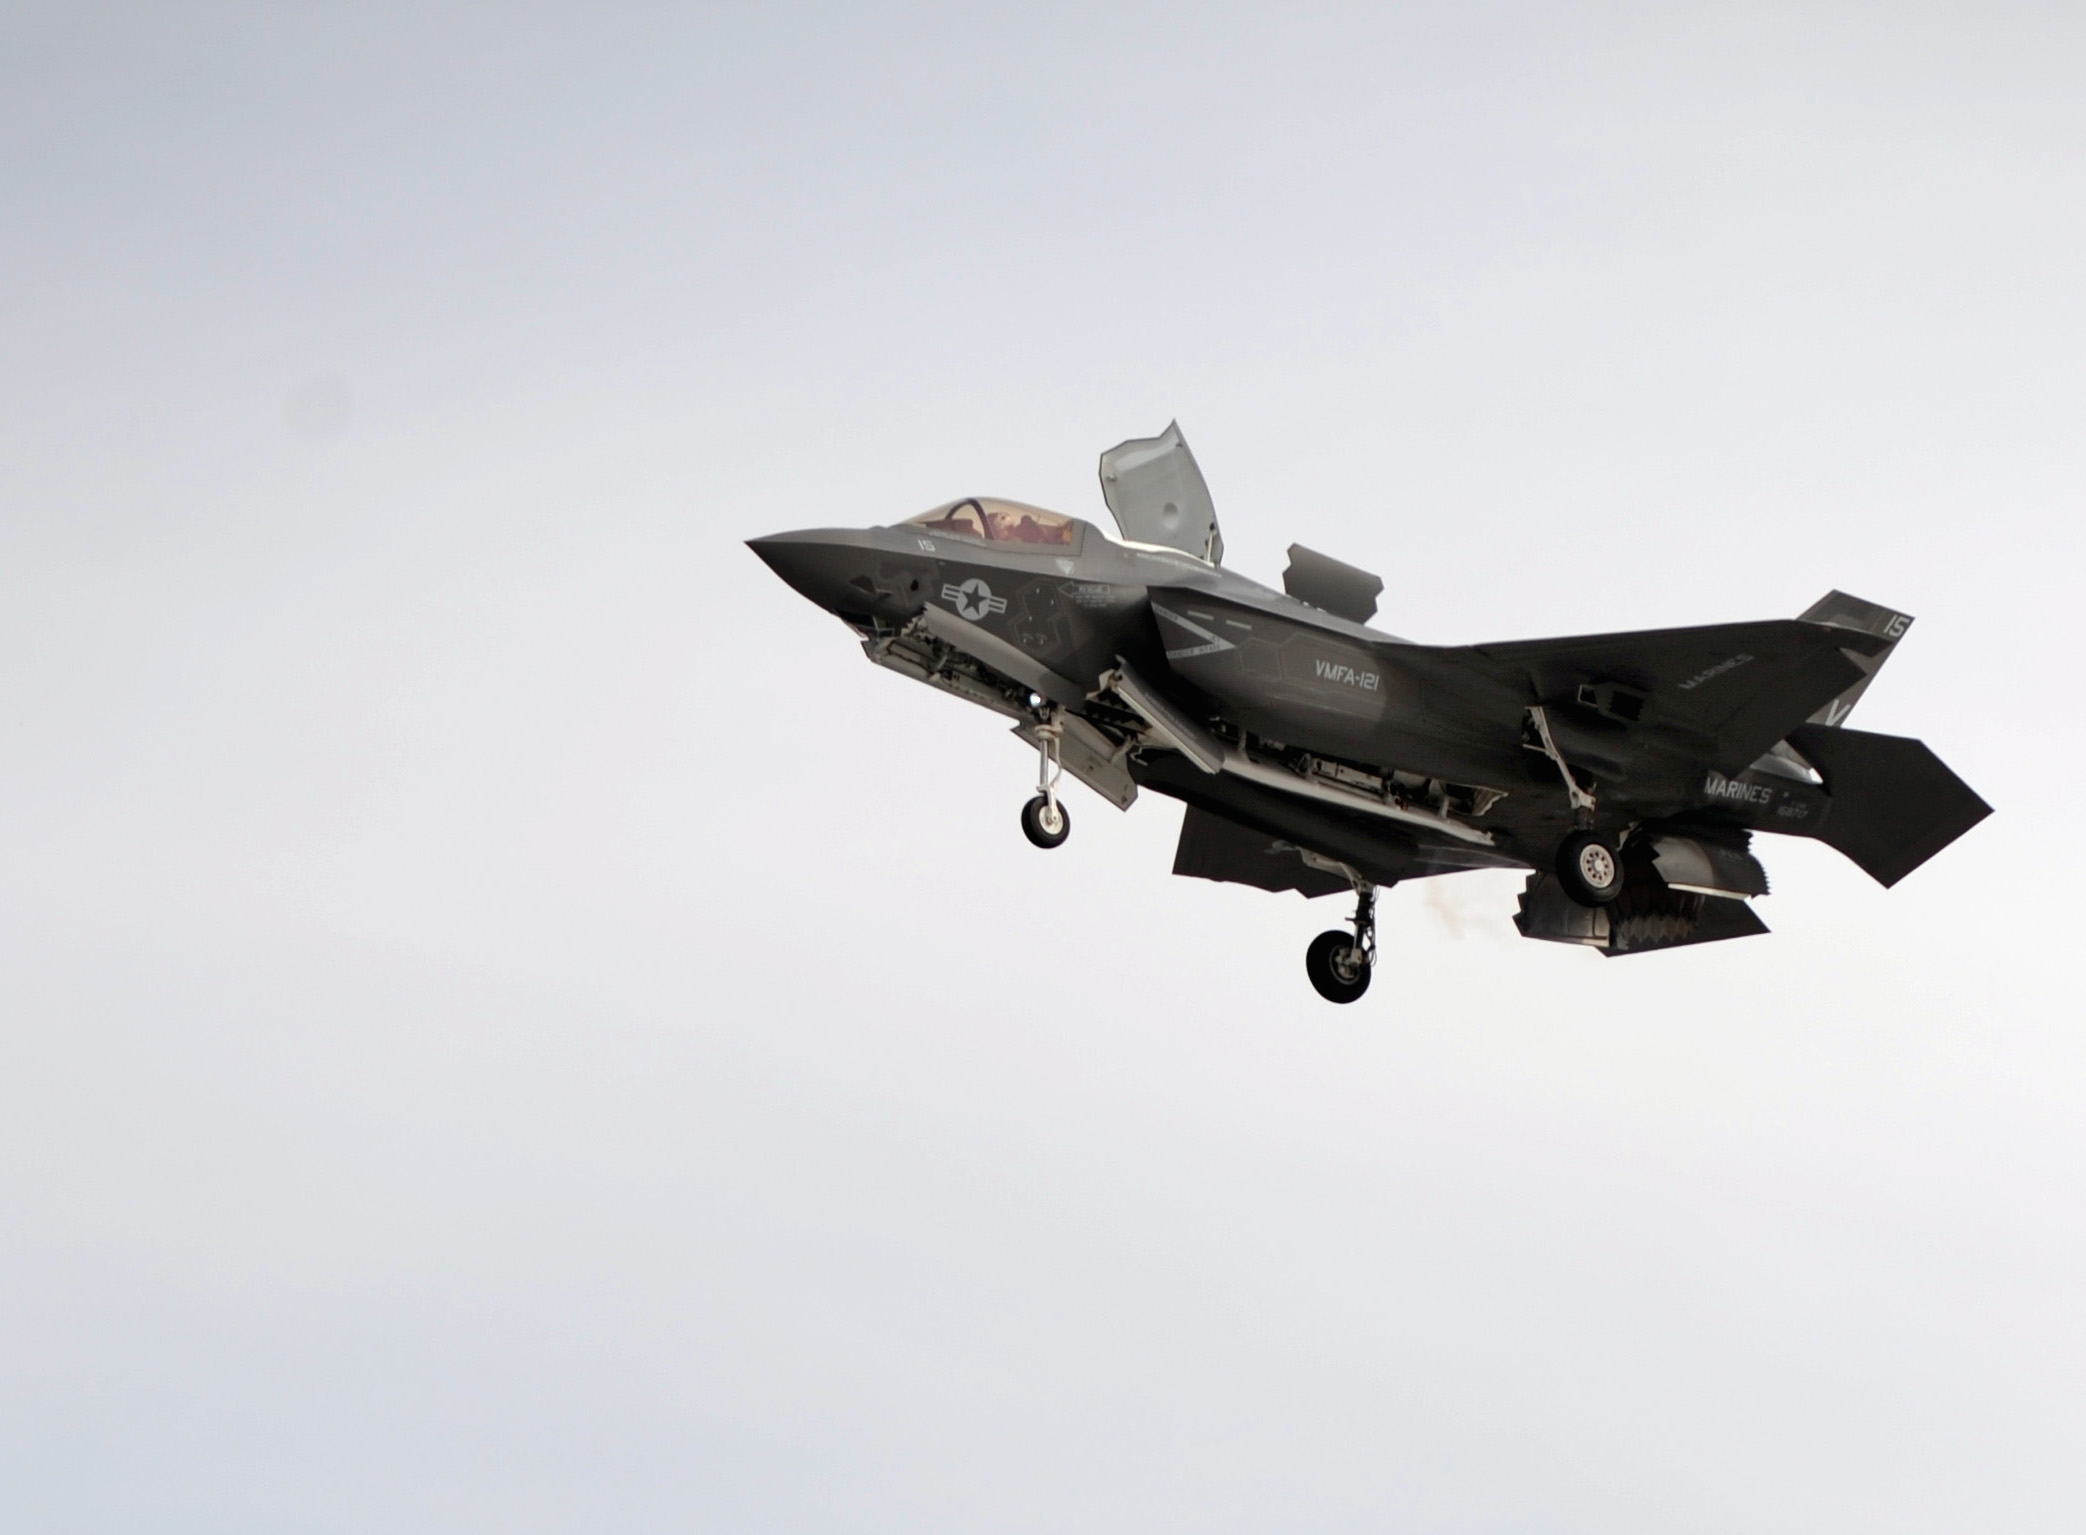 An F-35B Lightning II Joint Strike Fighter prepares to make a vertical landing at Marine Corps Air Station Yuma, Ariz. in 2013. US Navy Photo